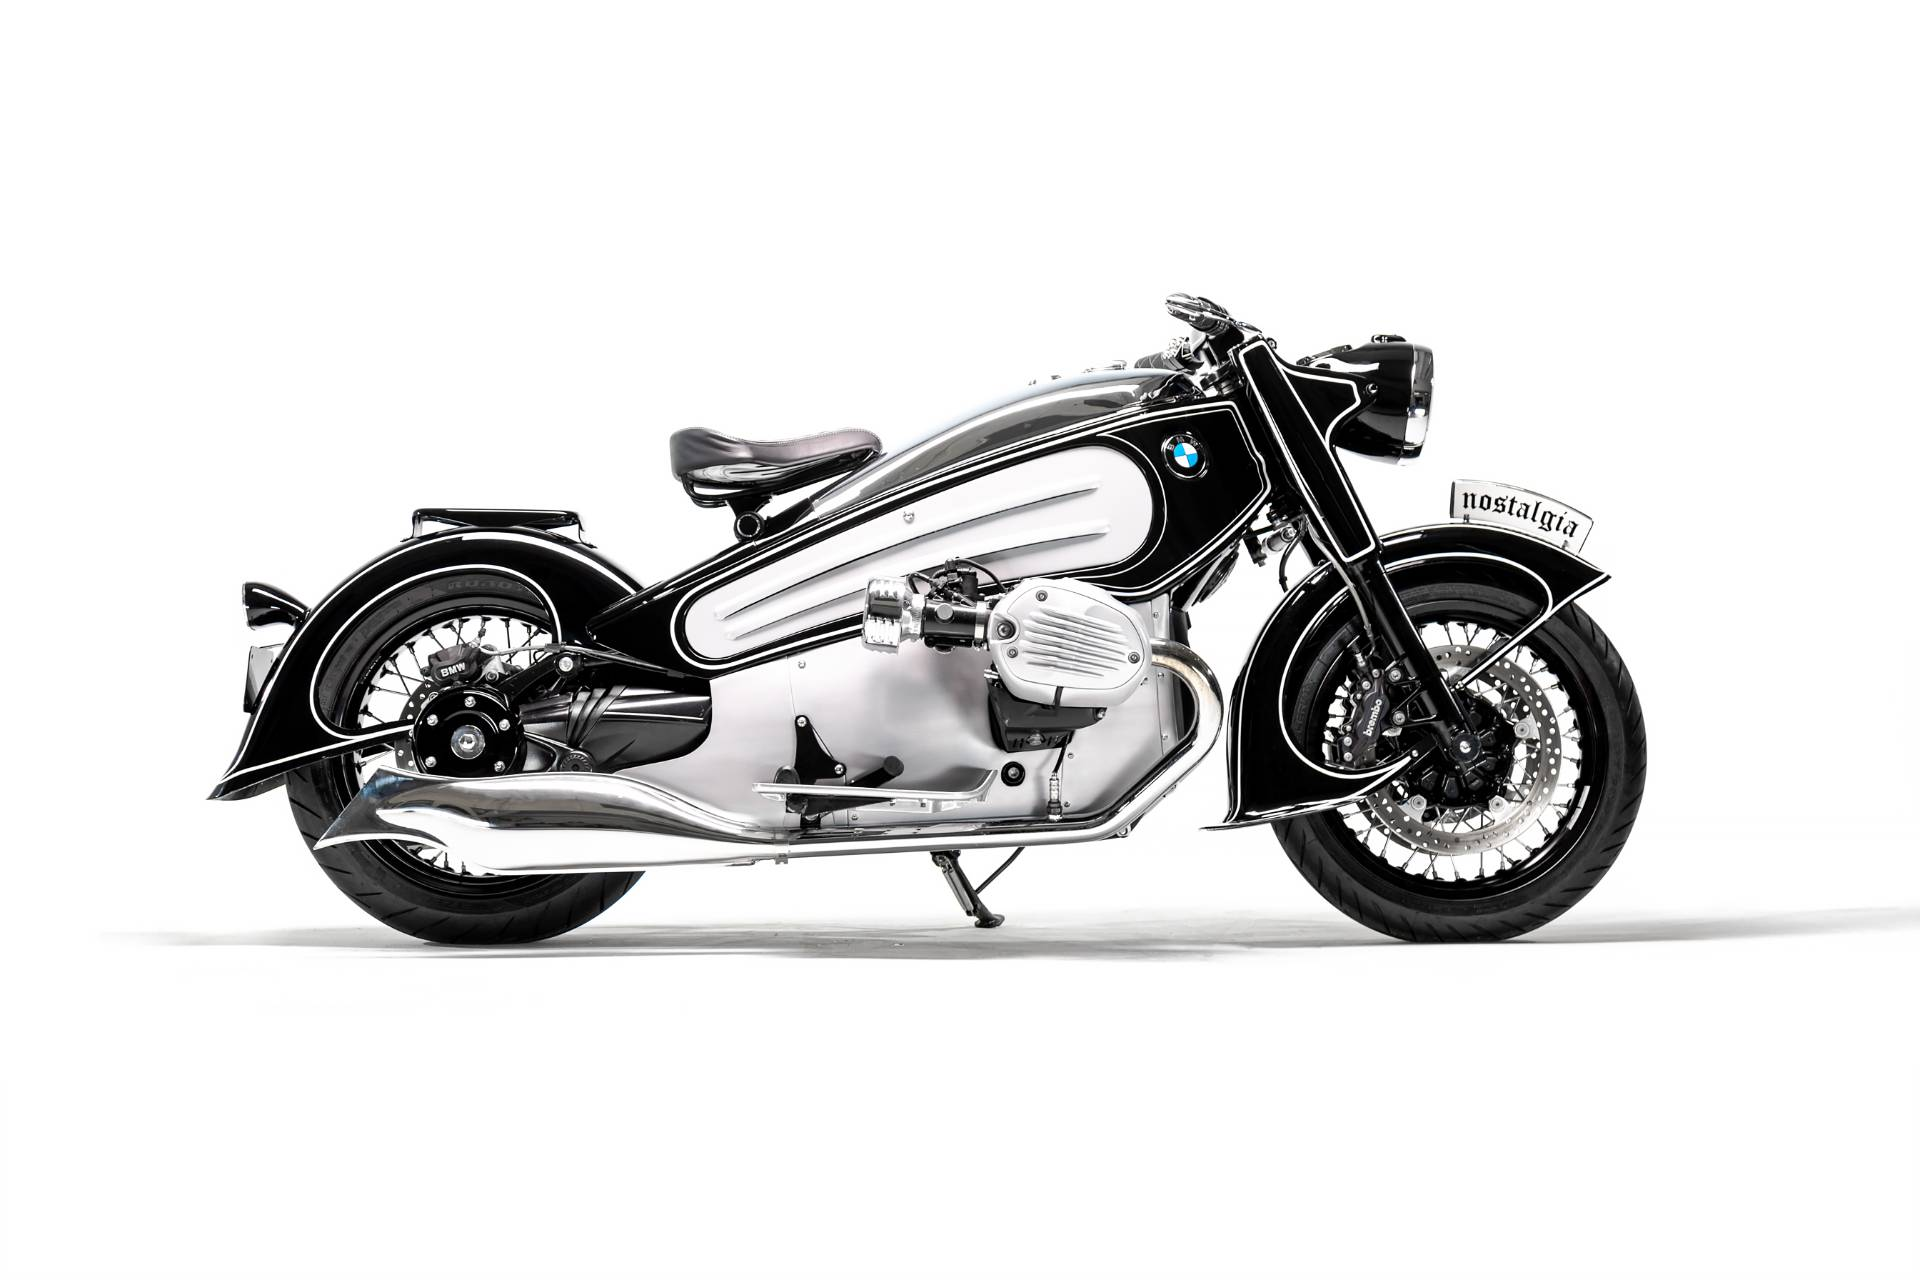 New 2019 BMW Nostalgia for sale, BMW Motorcycle Nostalgia, new BMW Motorcycle, Vintage, R7, BMW Motorcycles of Miami, Motorcycles of Miami, Motorcycles Miami - Photo 38